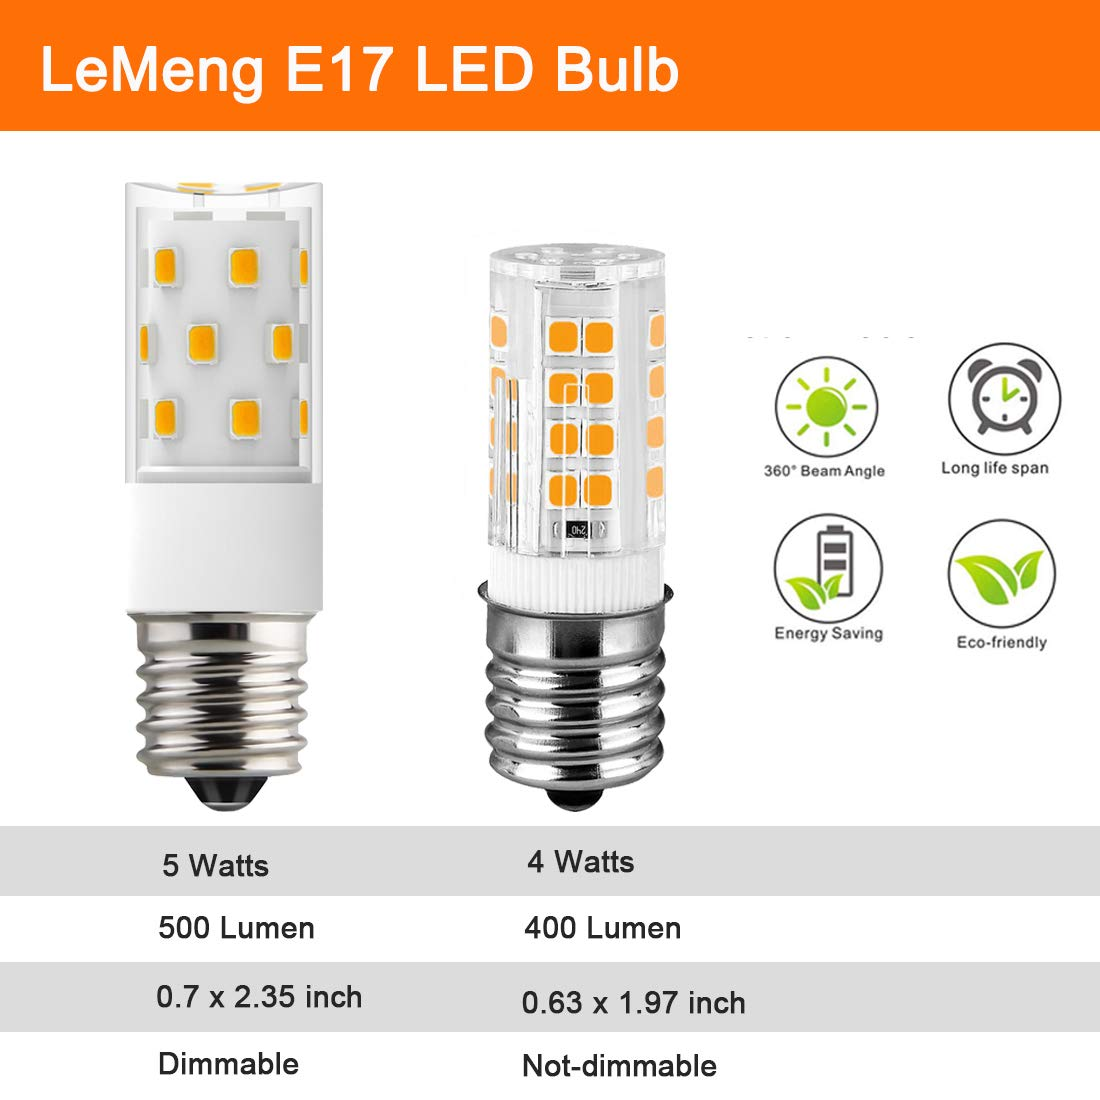 6 Pack LeMeng 120V BA15D led Bulb 4W 400lm Double Contact Bayonet Base 2700K Warm White 20W-35Watt Halogen Light Replacement for Sewing Machine Lamp Non-dimmable